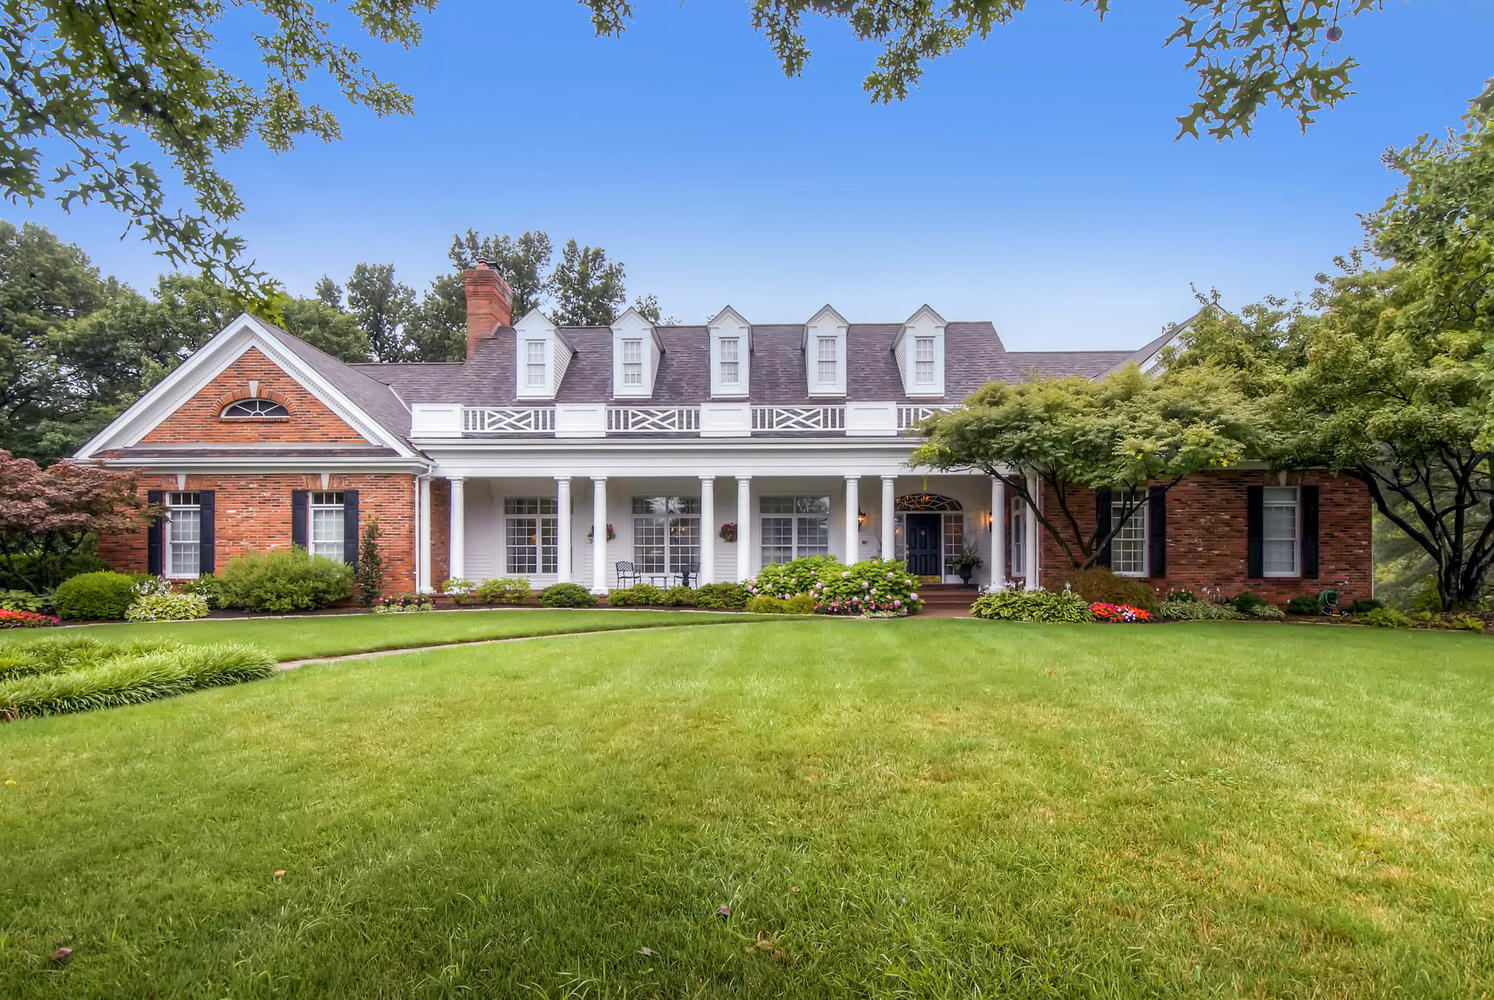 Property for Sale at Magnificent Frontenac Renovation in Gated Community with Pool 49 Manderleigh Estates Court Frontenac, Missouri 63131 United States